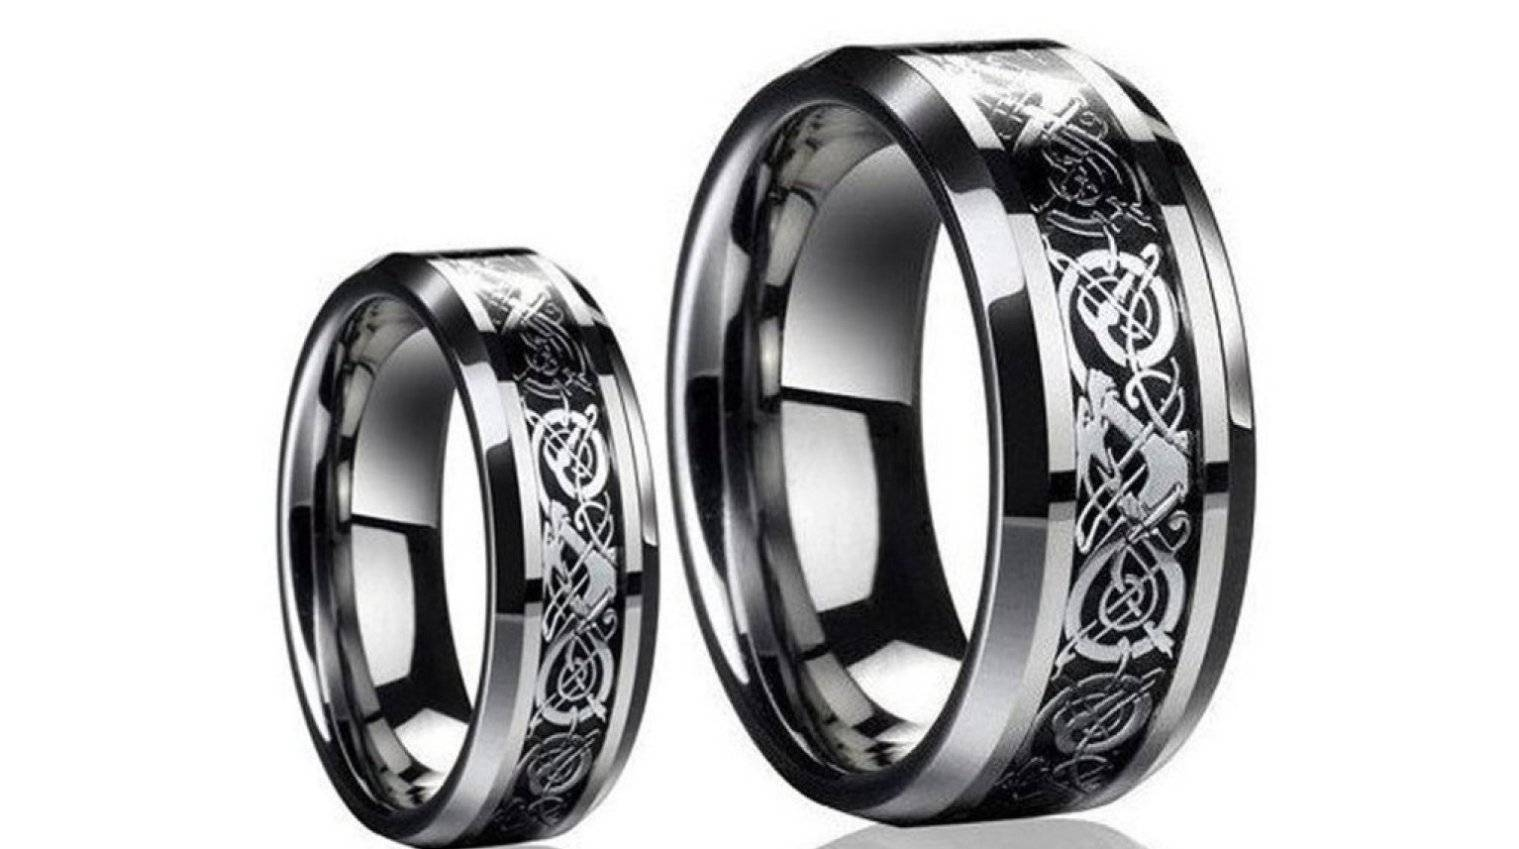 Top Pictures Wedding Jewelry New York City With Wedding Rings Intended For Kohls Wedding Bands (Gallery 15 of 15)